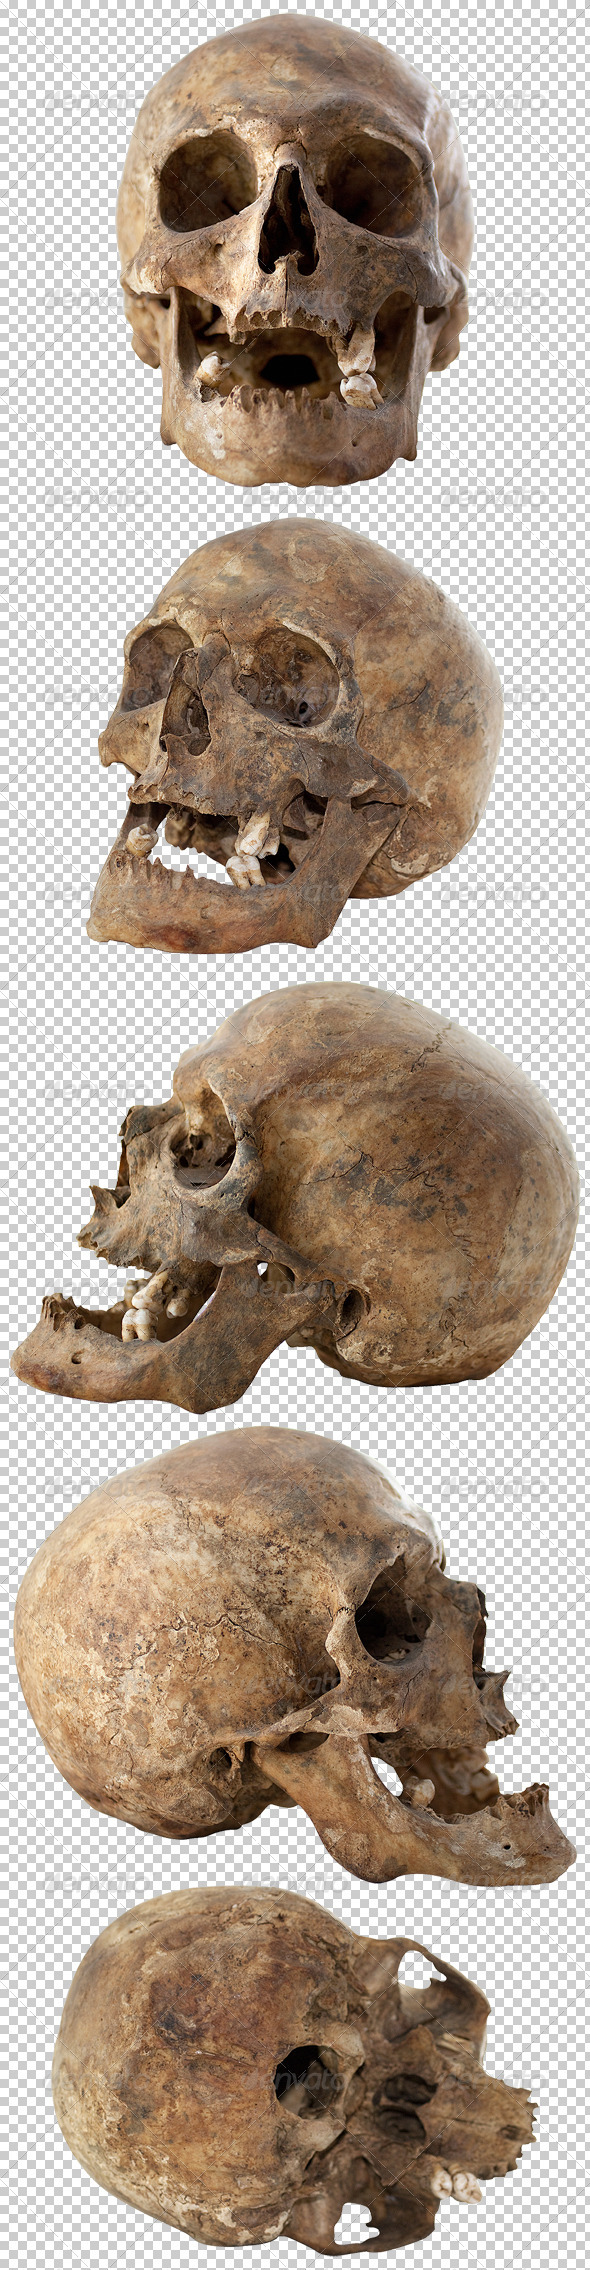 Five Human Skulls Set - Miscellaneous Isolated Objects